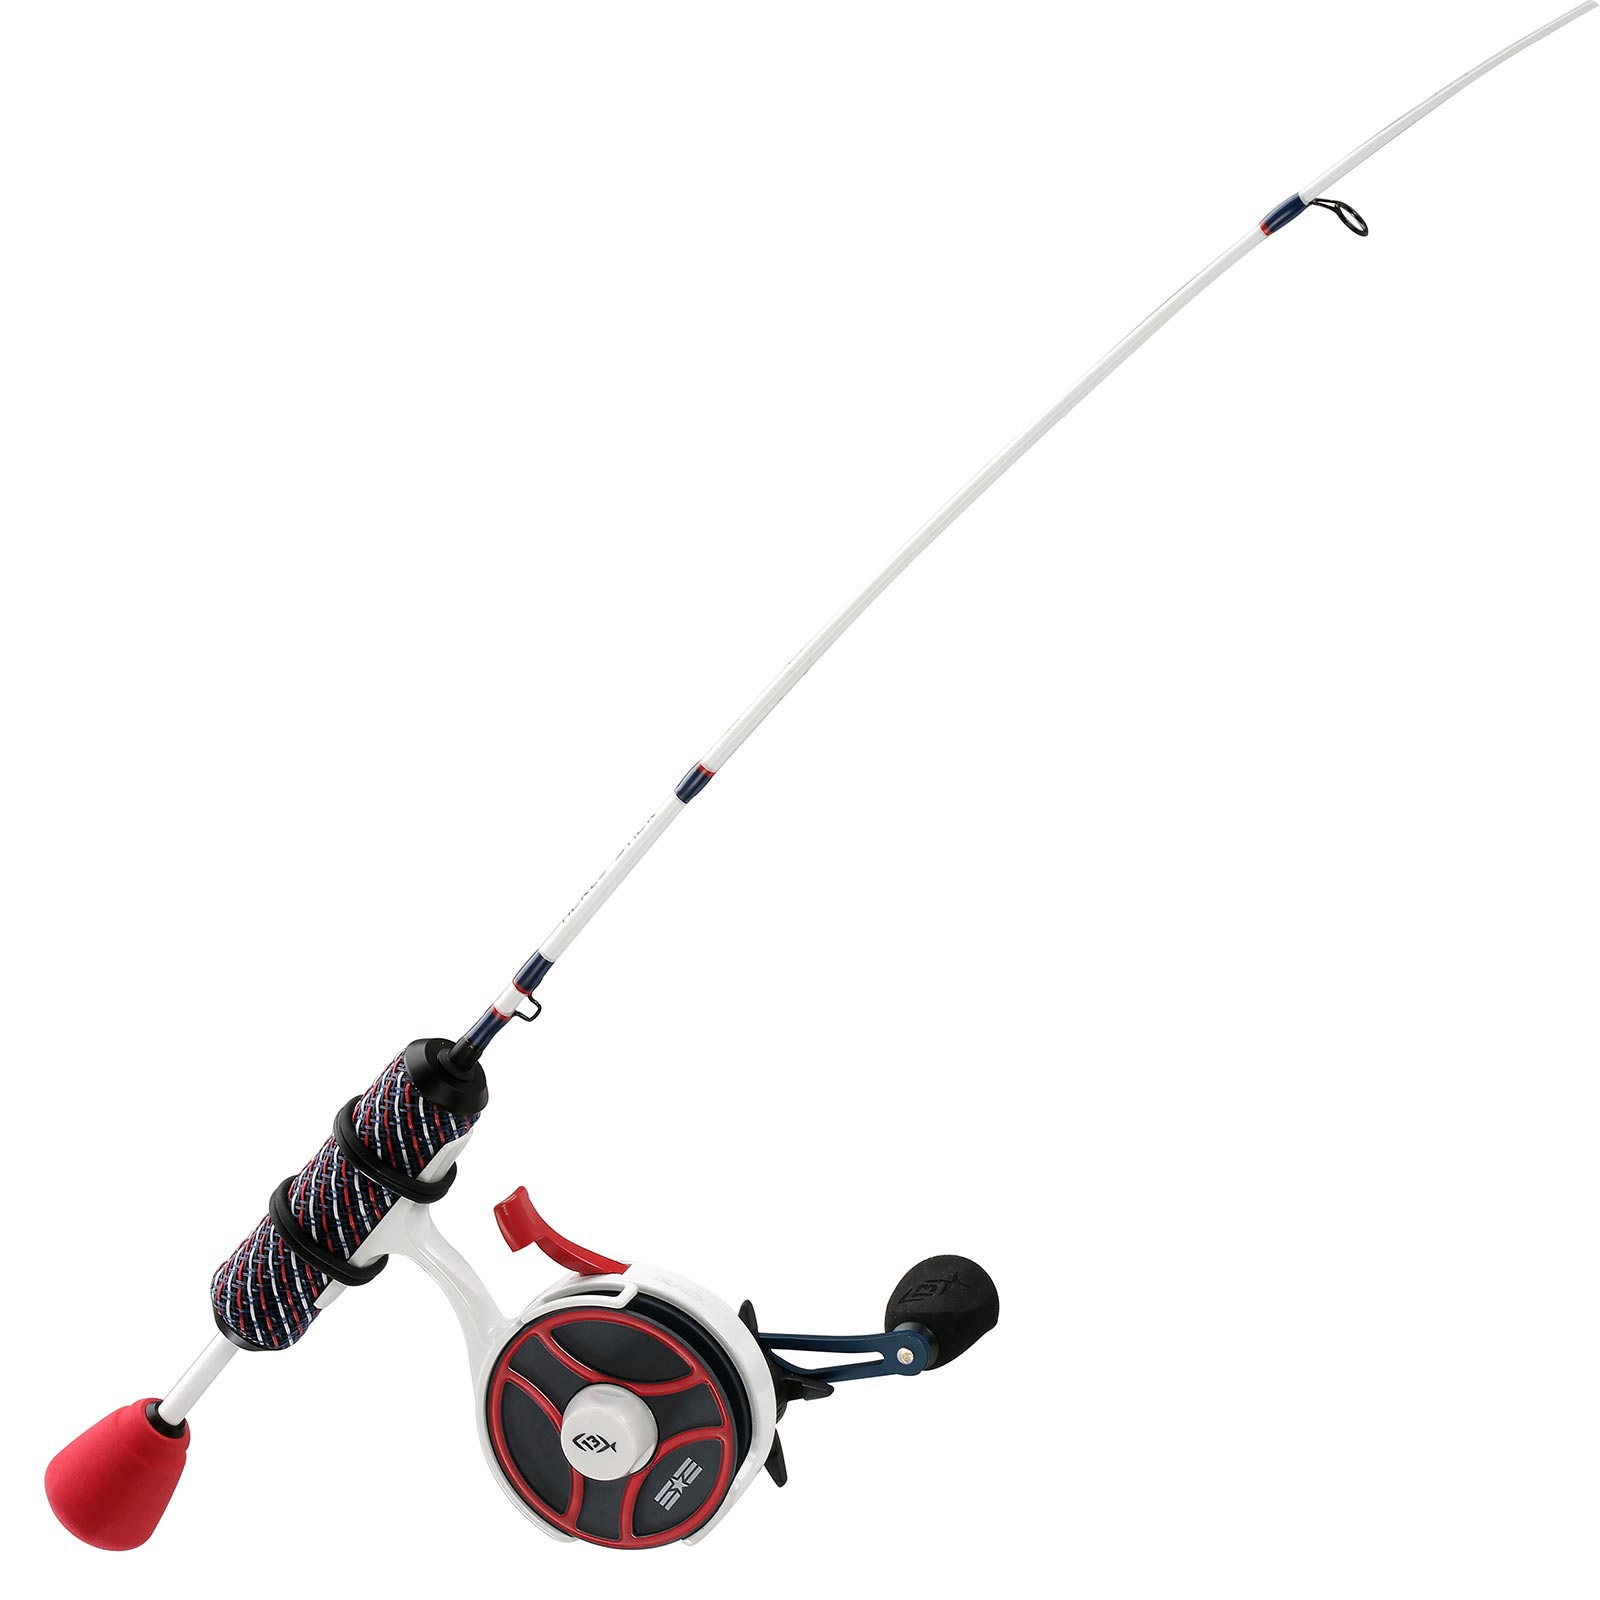 13 Fishing Black Betty FreeFall Ghost Patriot Edition Inline Ice Combo Handle